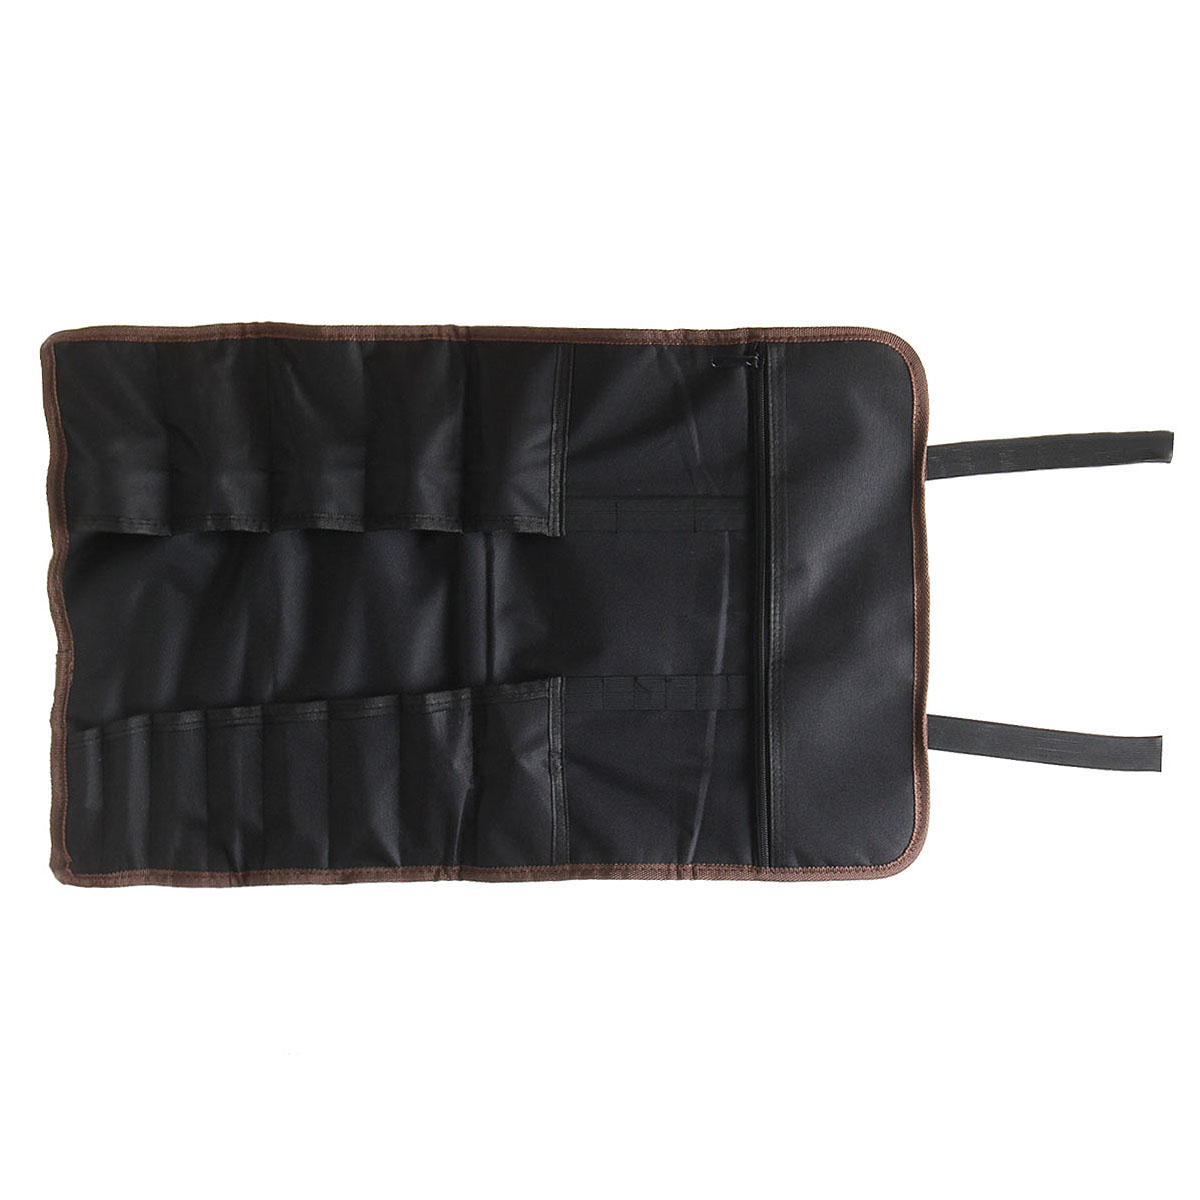 Us 9 18 42 Off 14 Pocket Chef Knife Bag Roll Carry Case Kitchen Portable Storage Black In Blocks Bags From Home Garden On